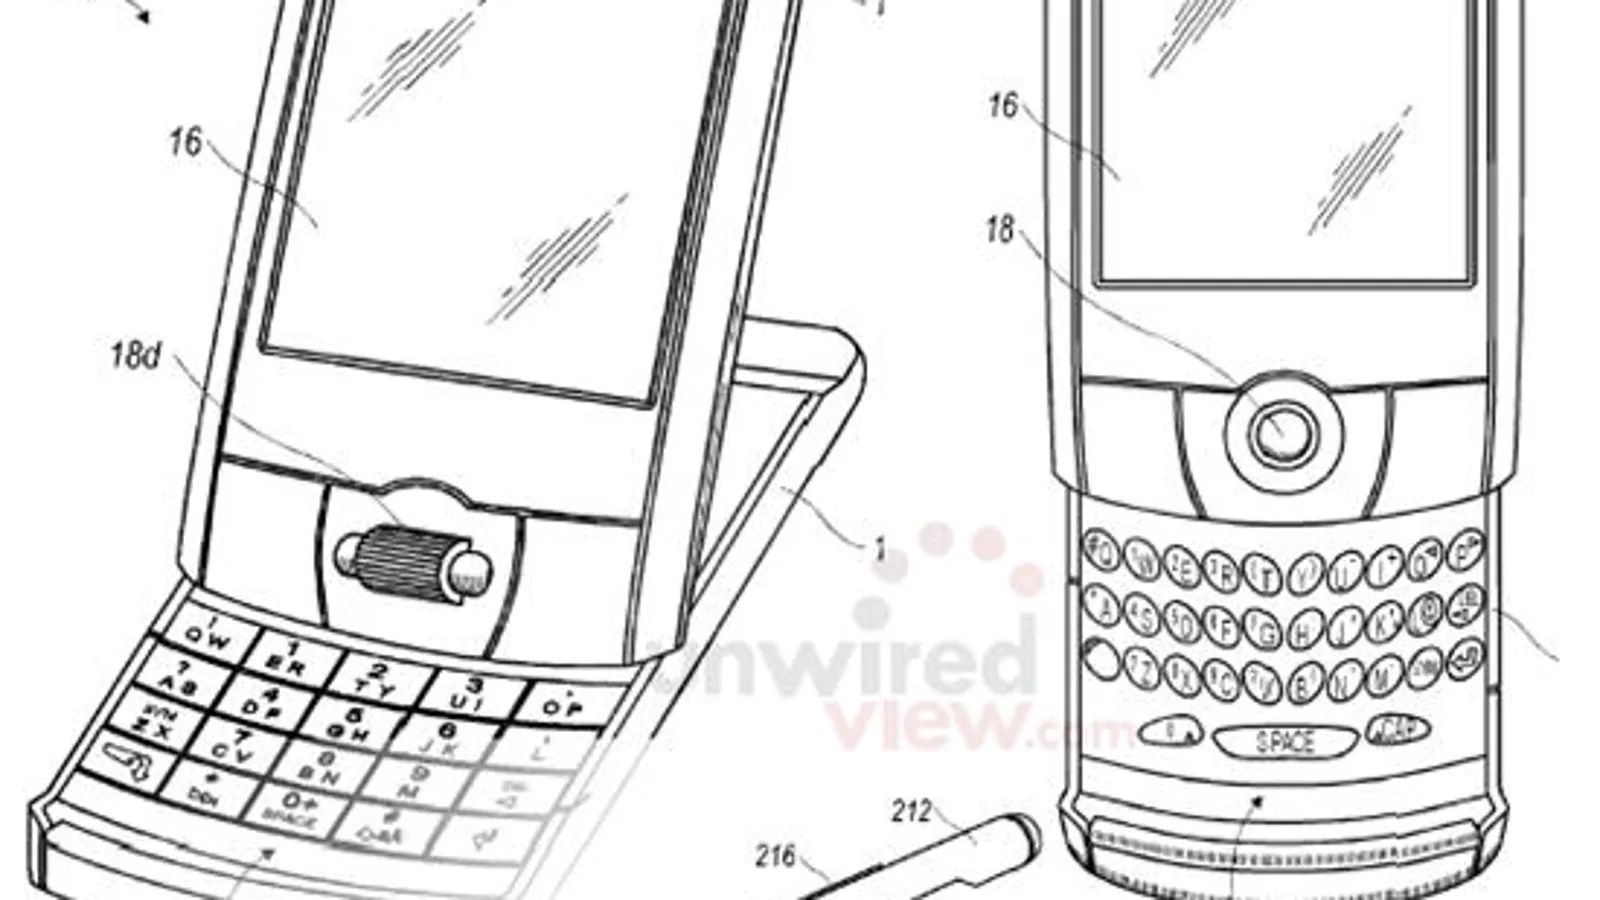 New RIM Patents Hint at New Blackberry Form Factors